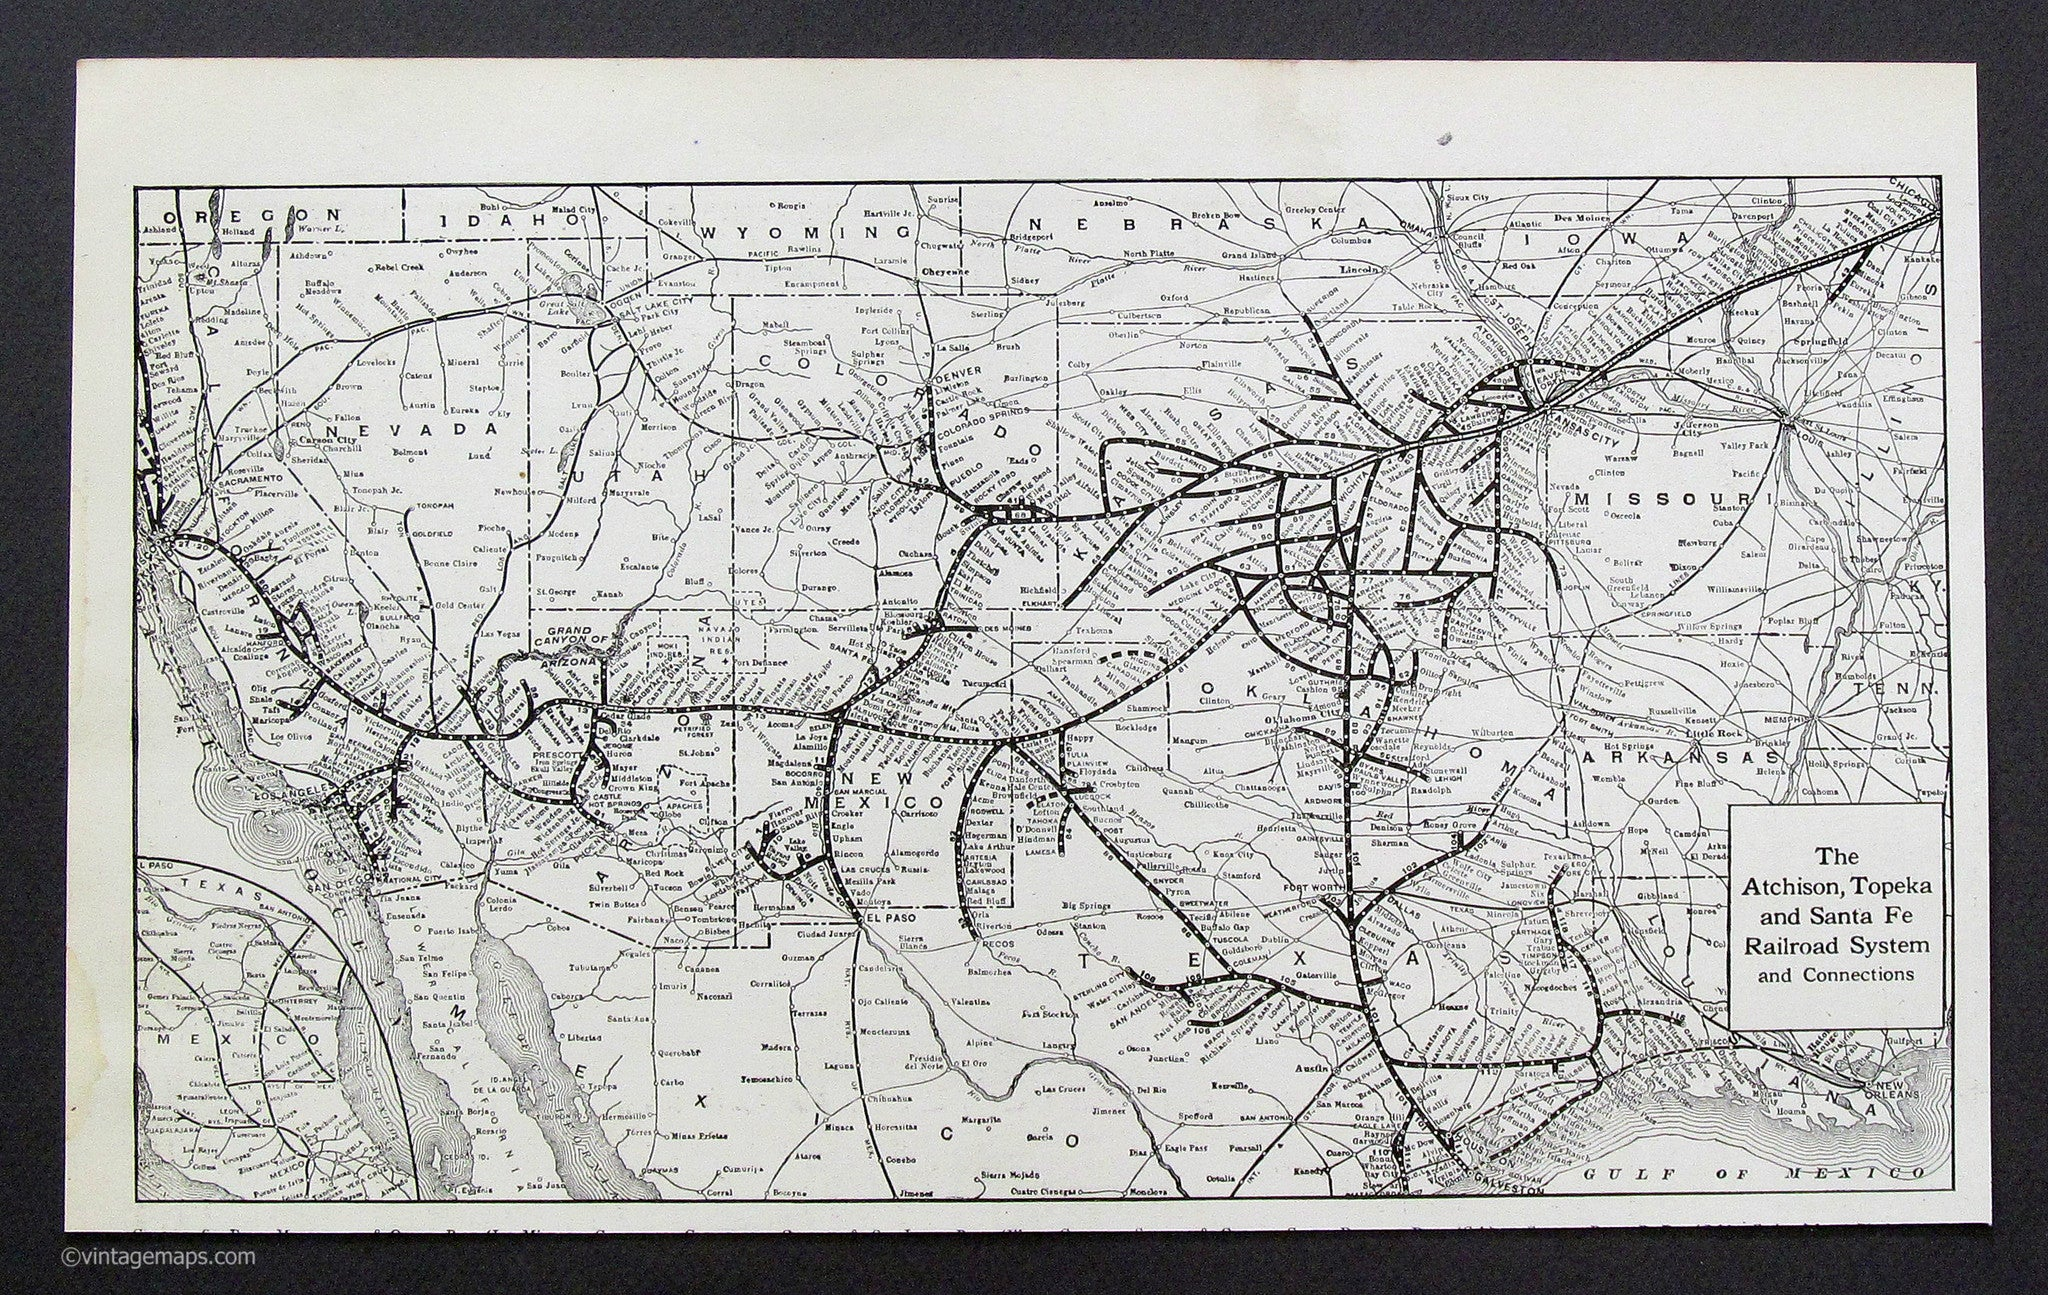 Atchison Topeka and Santa Fe Railroad System 1921 on boca raton on us map, helena on us map, greensboro on us map, madison on us map, pikes peak on us map, knoxville on us map, st. louis on us map, savannah on us map, manchester on us map, natchitoches on us map, pierre on us map, new orleans on us map, los angeles on us map, grand rapids on us map, new york on us map, boise on us map, scottsdale on us map, denver on us map, boulder on us map, san antonio on us map,